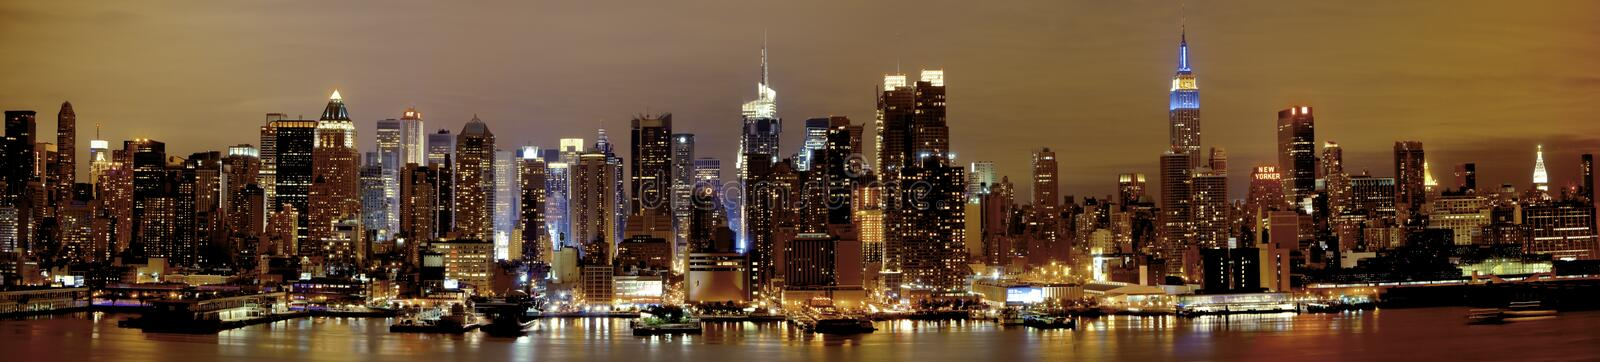 New York Manhattan na noite foto de stock royalty free